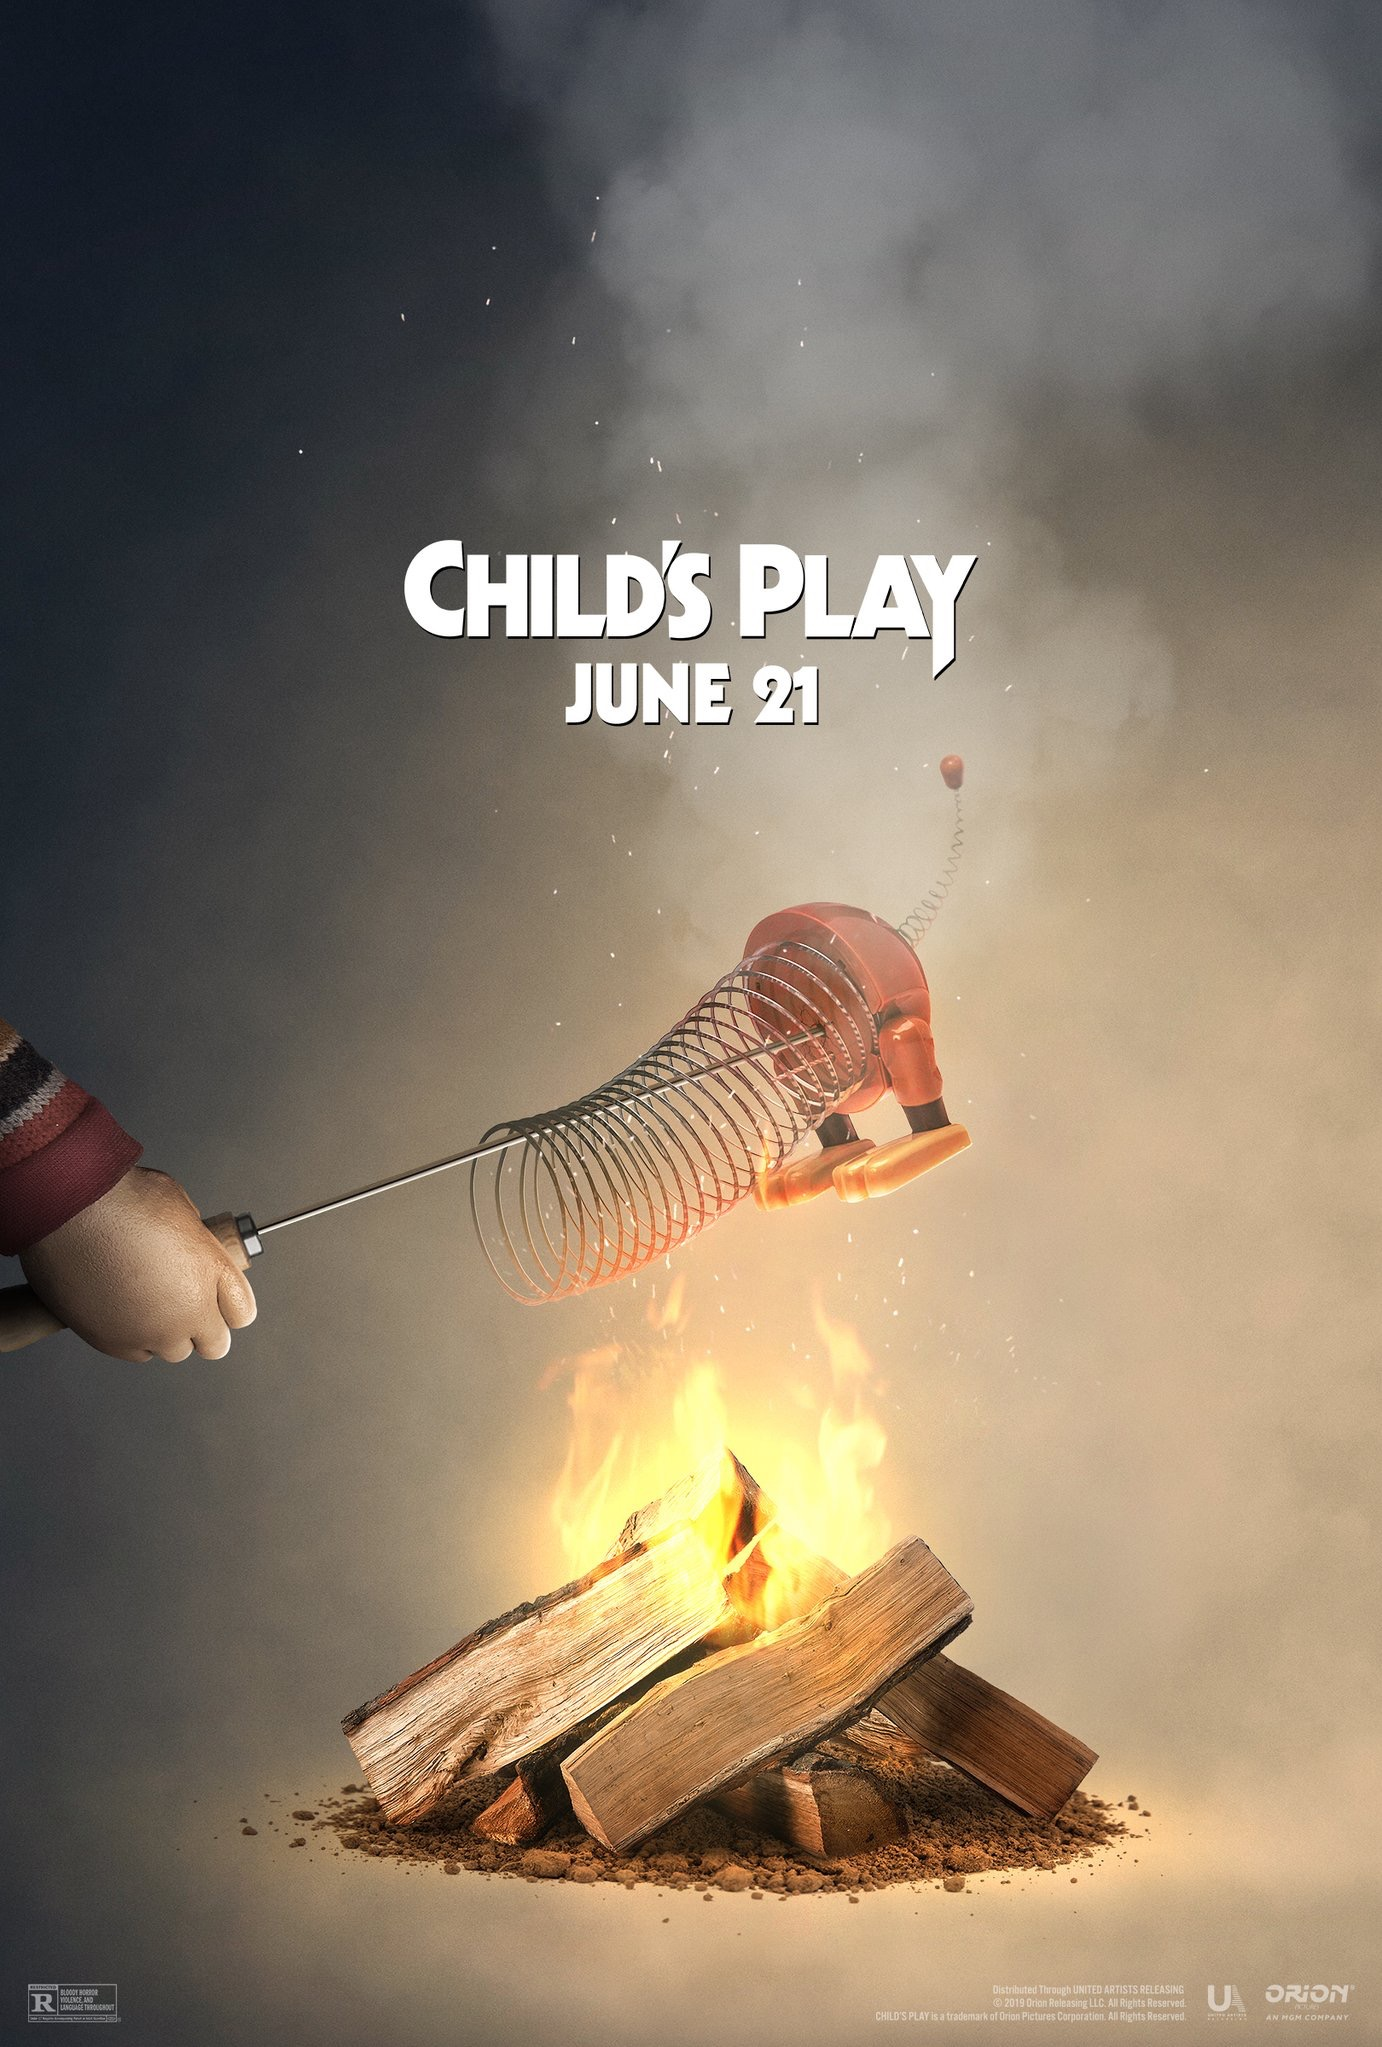 Chucky Roasts Slinky From Toy Story Over A Fire In A New